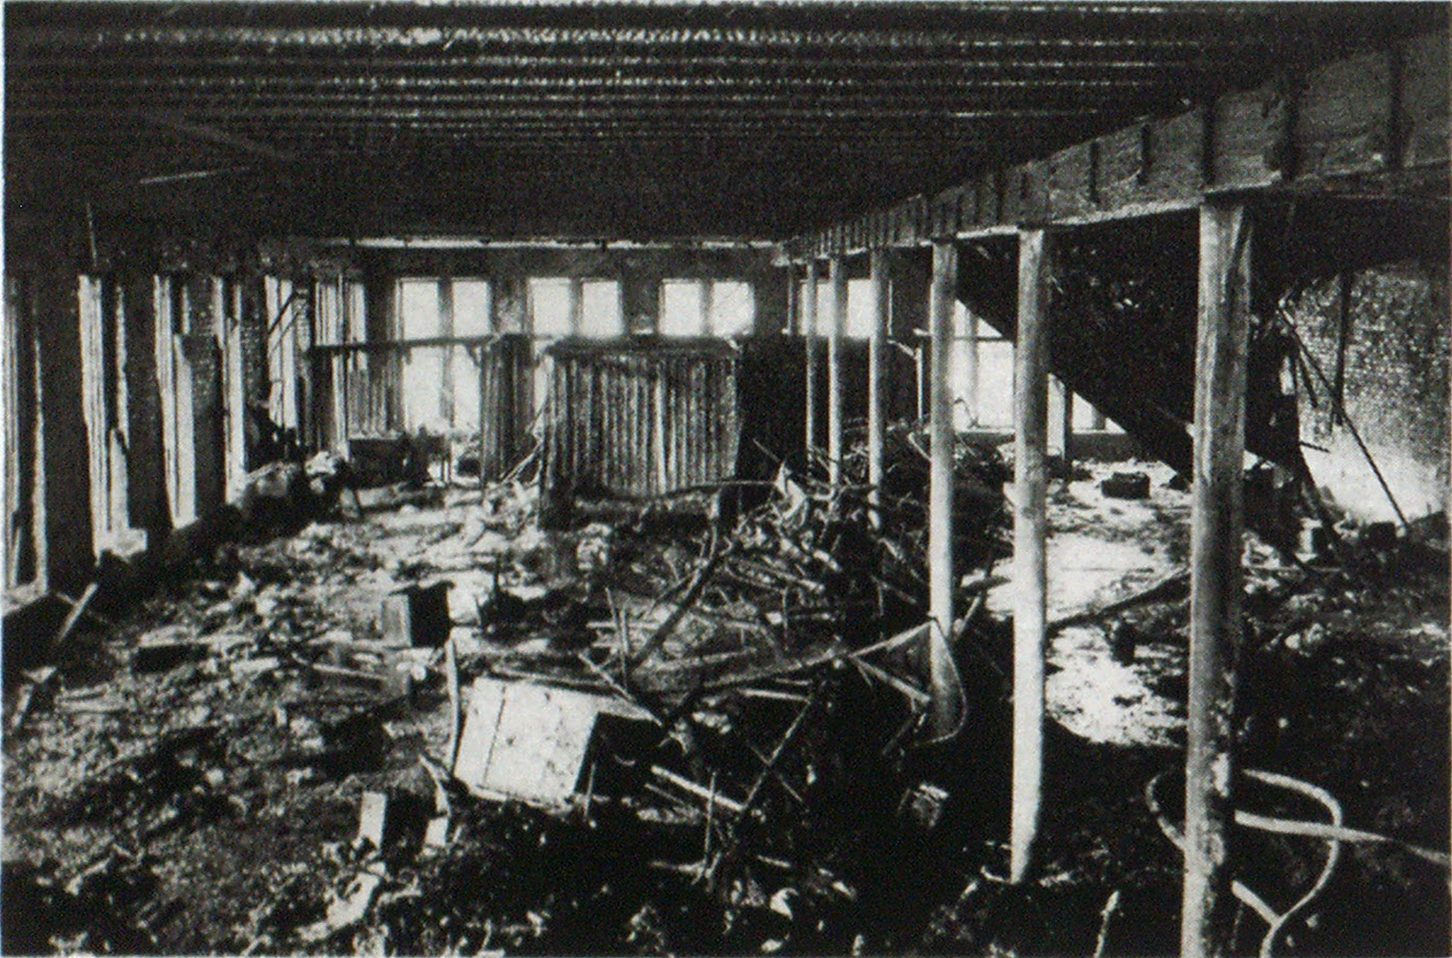 A Floor, after a Fire, before Overhauling Operations. Debris Is Moved Toward Walls when Overhauling.